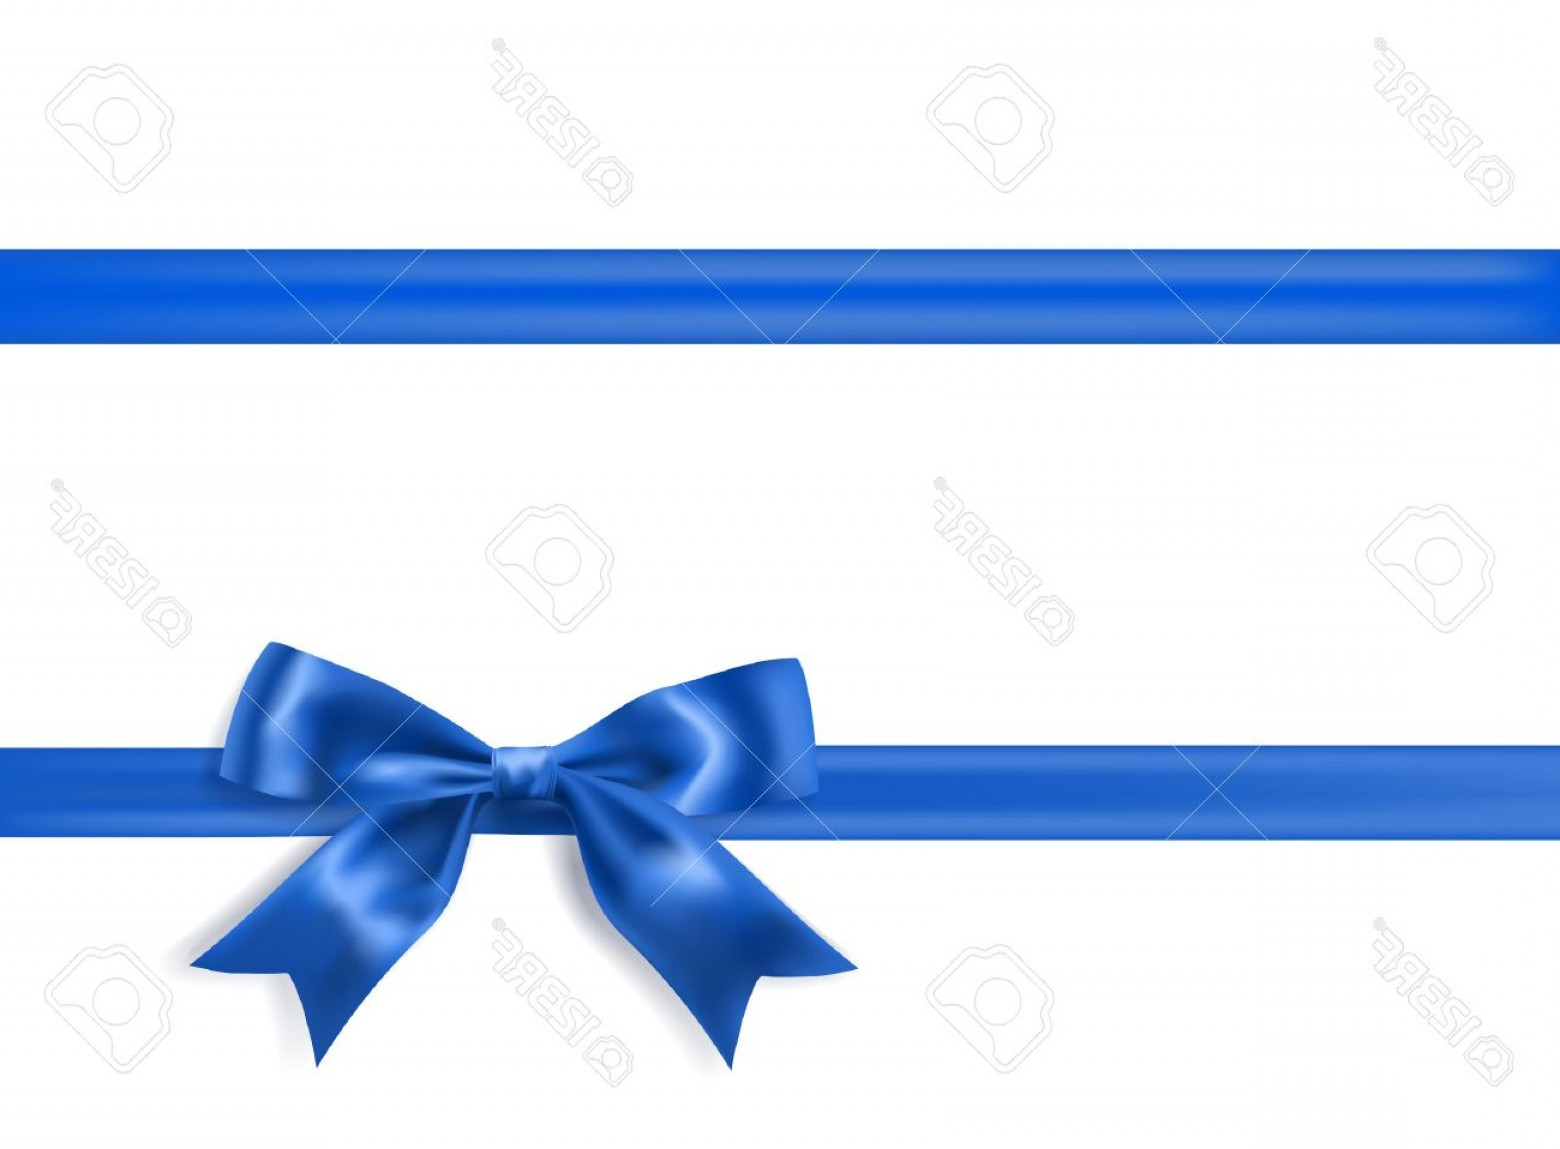 Blue With White Background Vector: Photostock Vector Royal Blue Silky Bow And Ribbon Border On White Background Vector